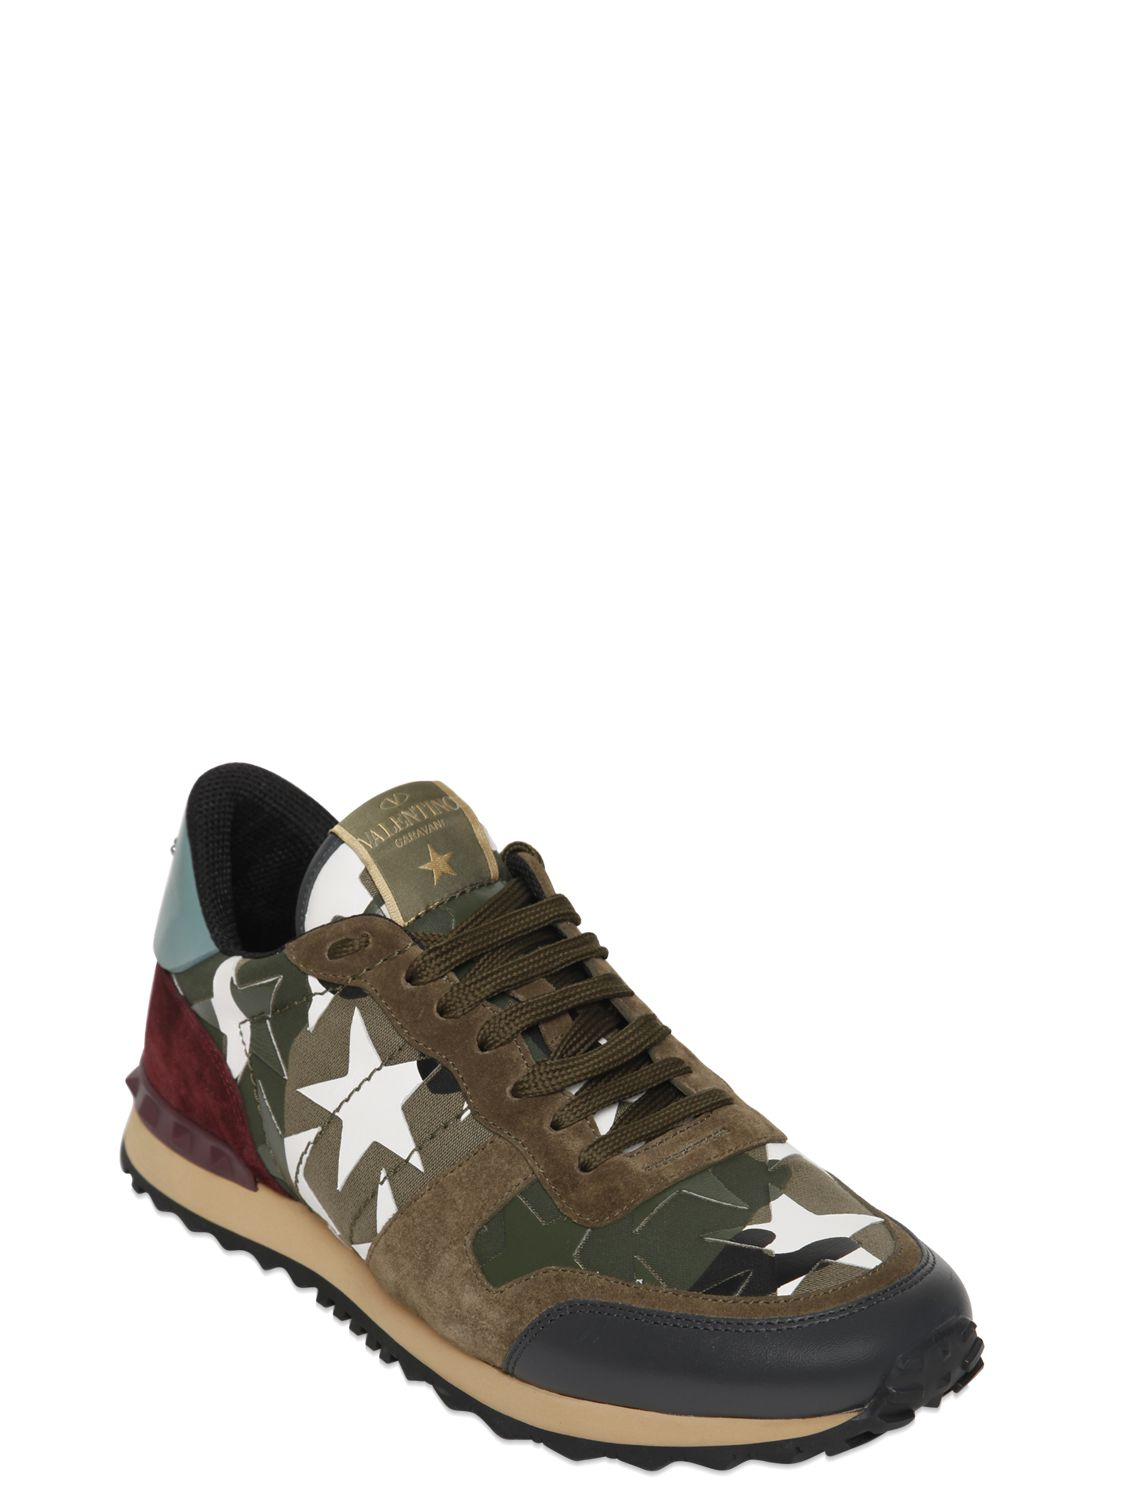 Sneakers valentino homme camouflage